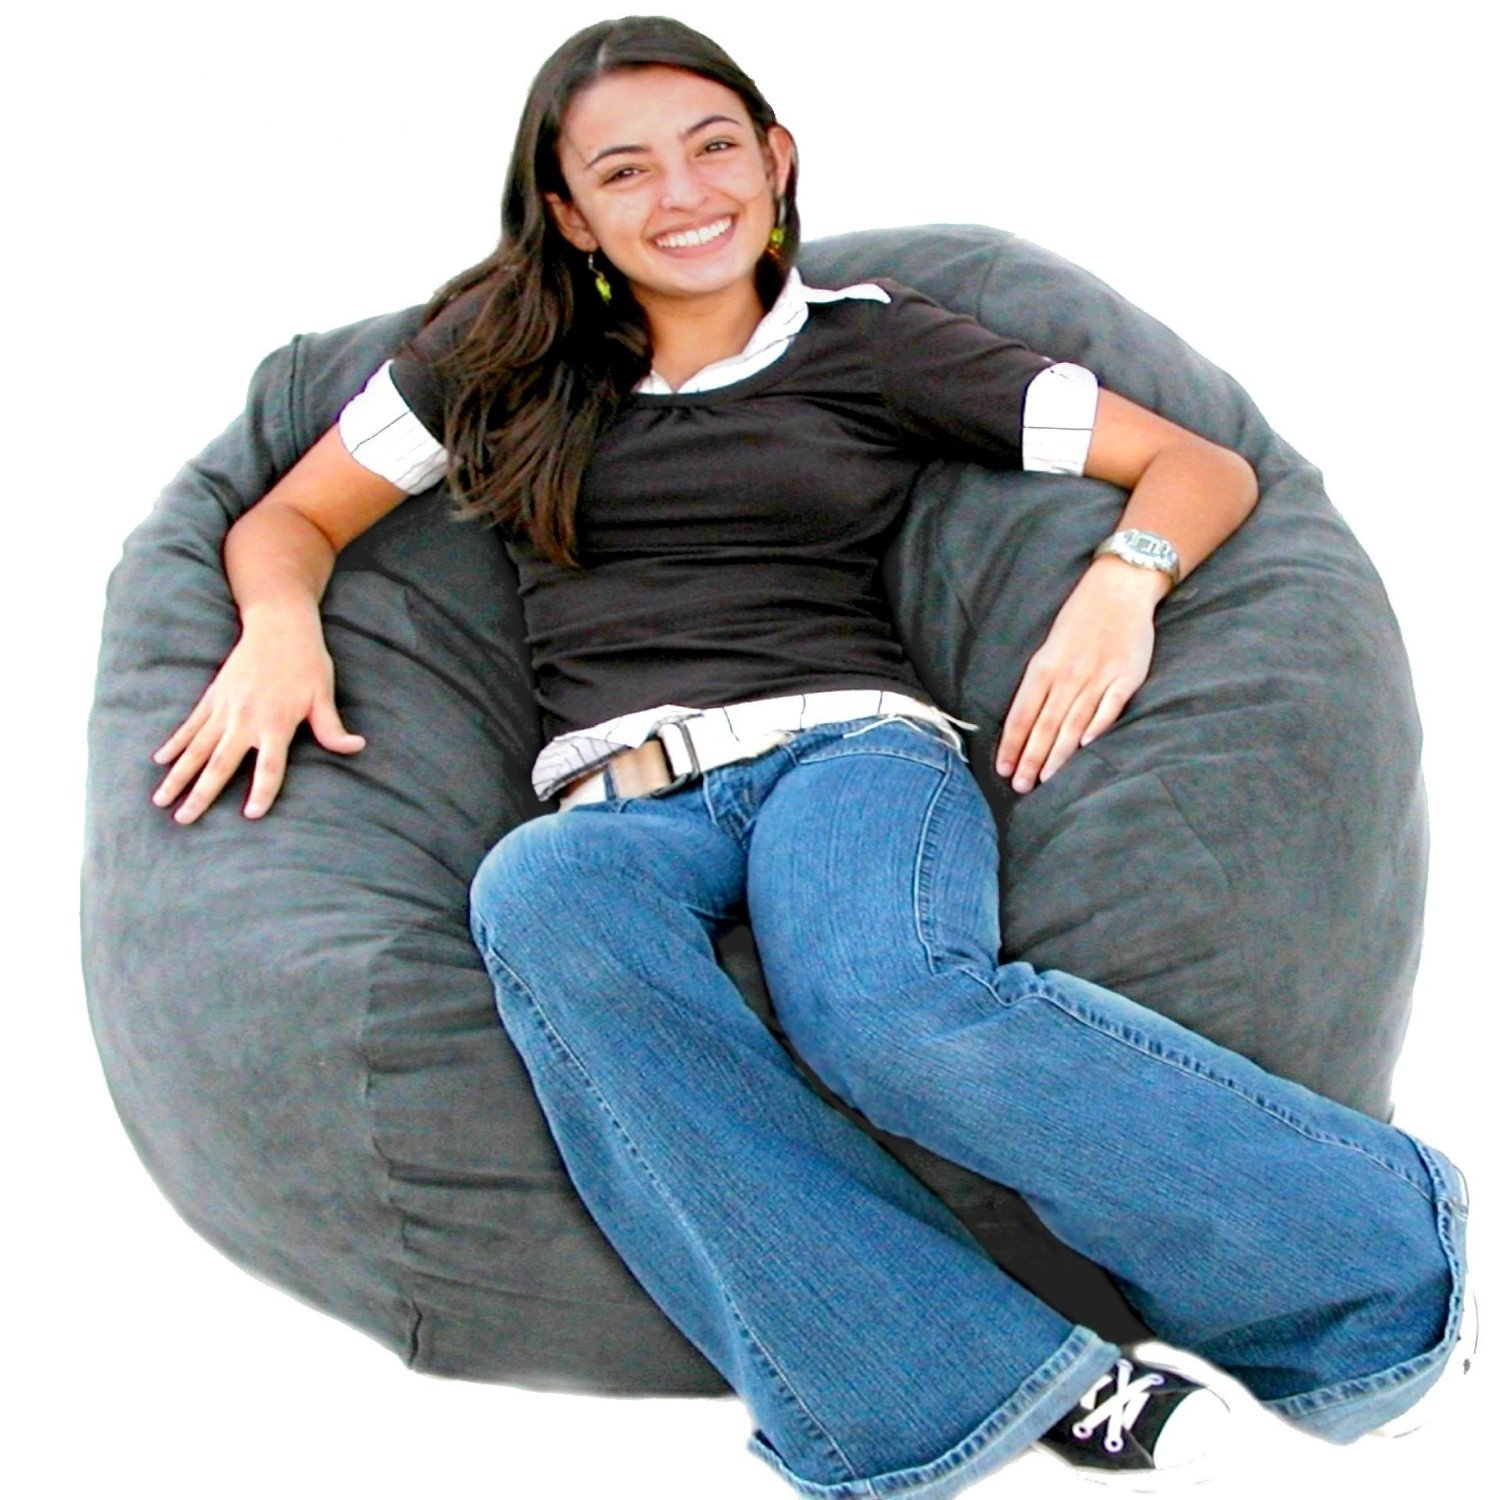 bean bag sofas india repair sofa bed anniversary gift for desi indian wife under 50